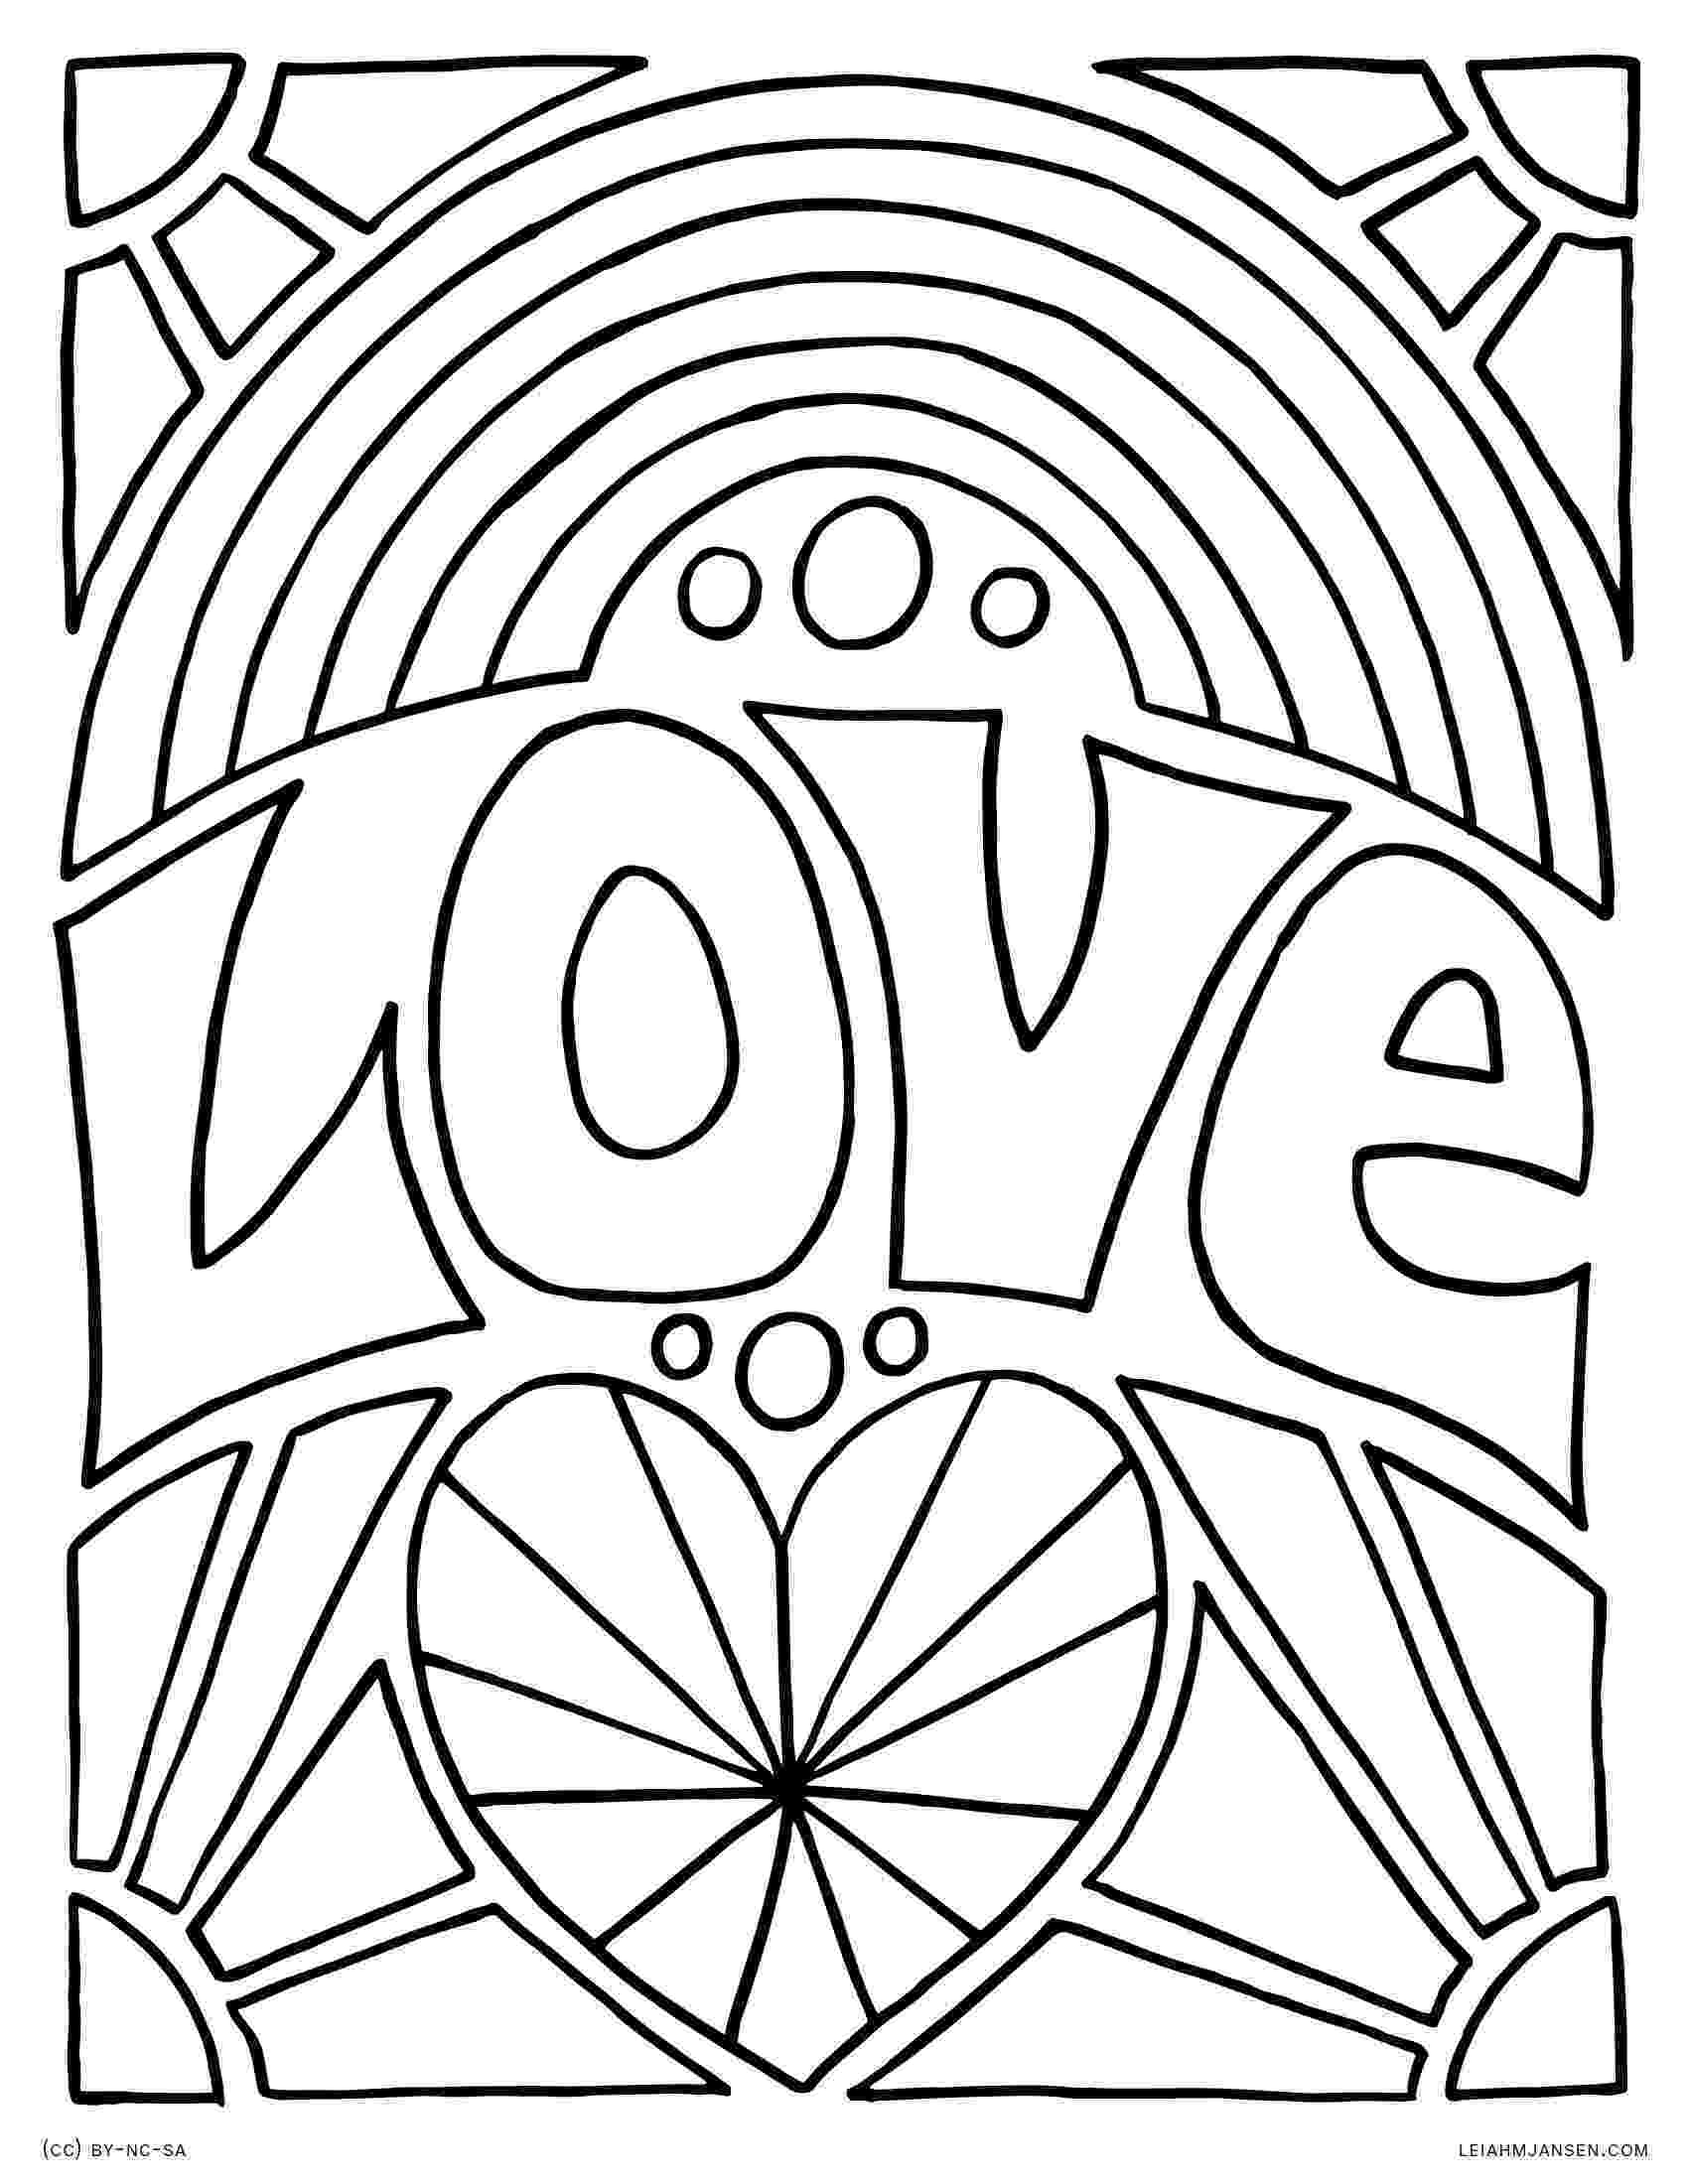 printable coloring pages for adults love peace and love coloring pages doves kissing in peace and printable pages for coloring adults love